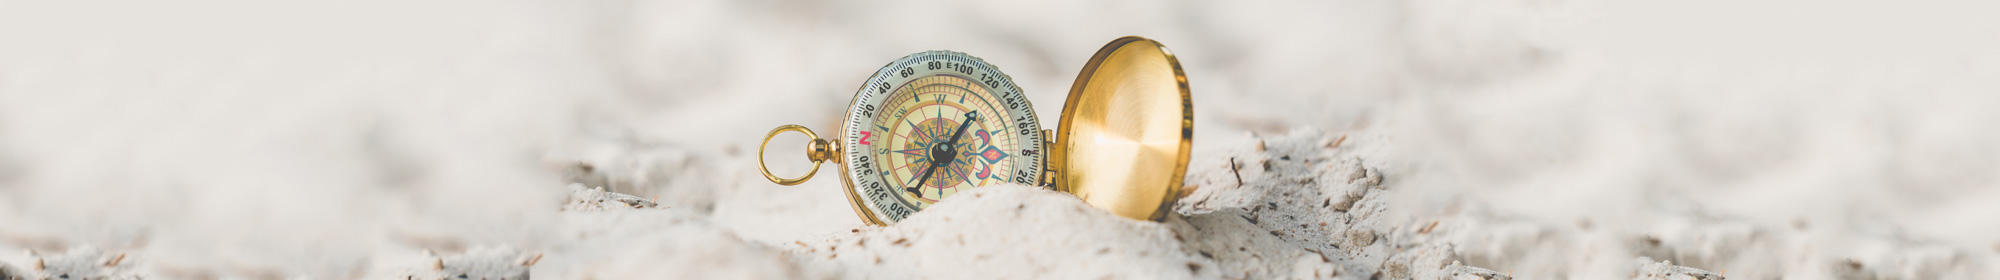 compass resting on sand